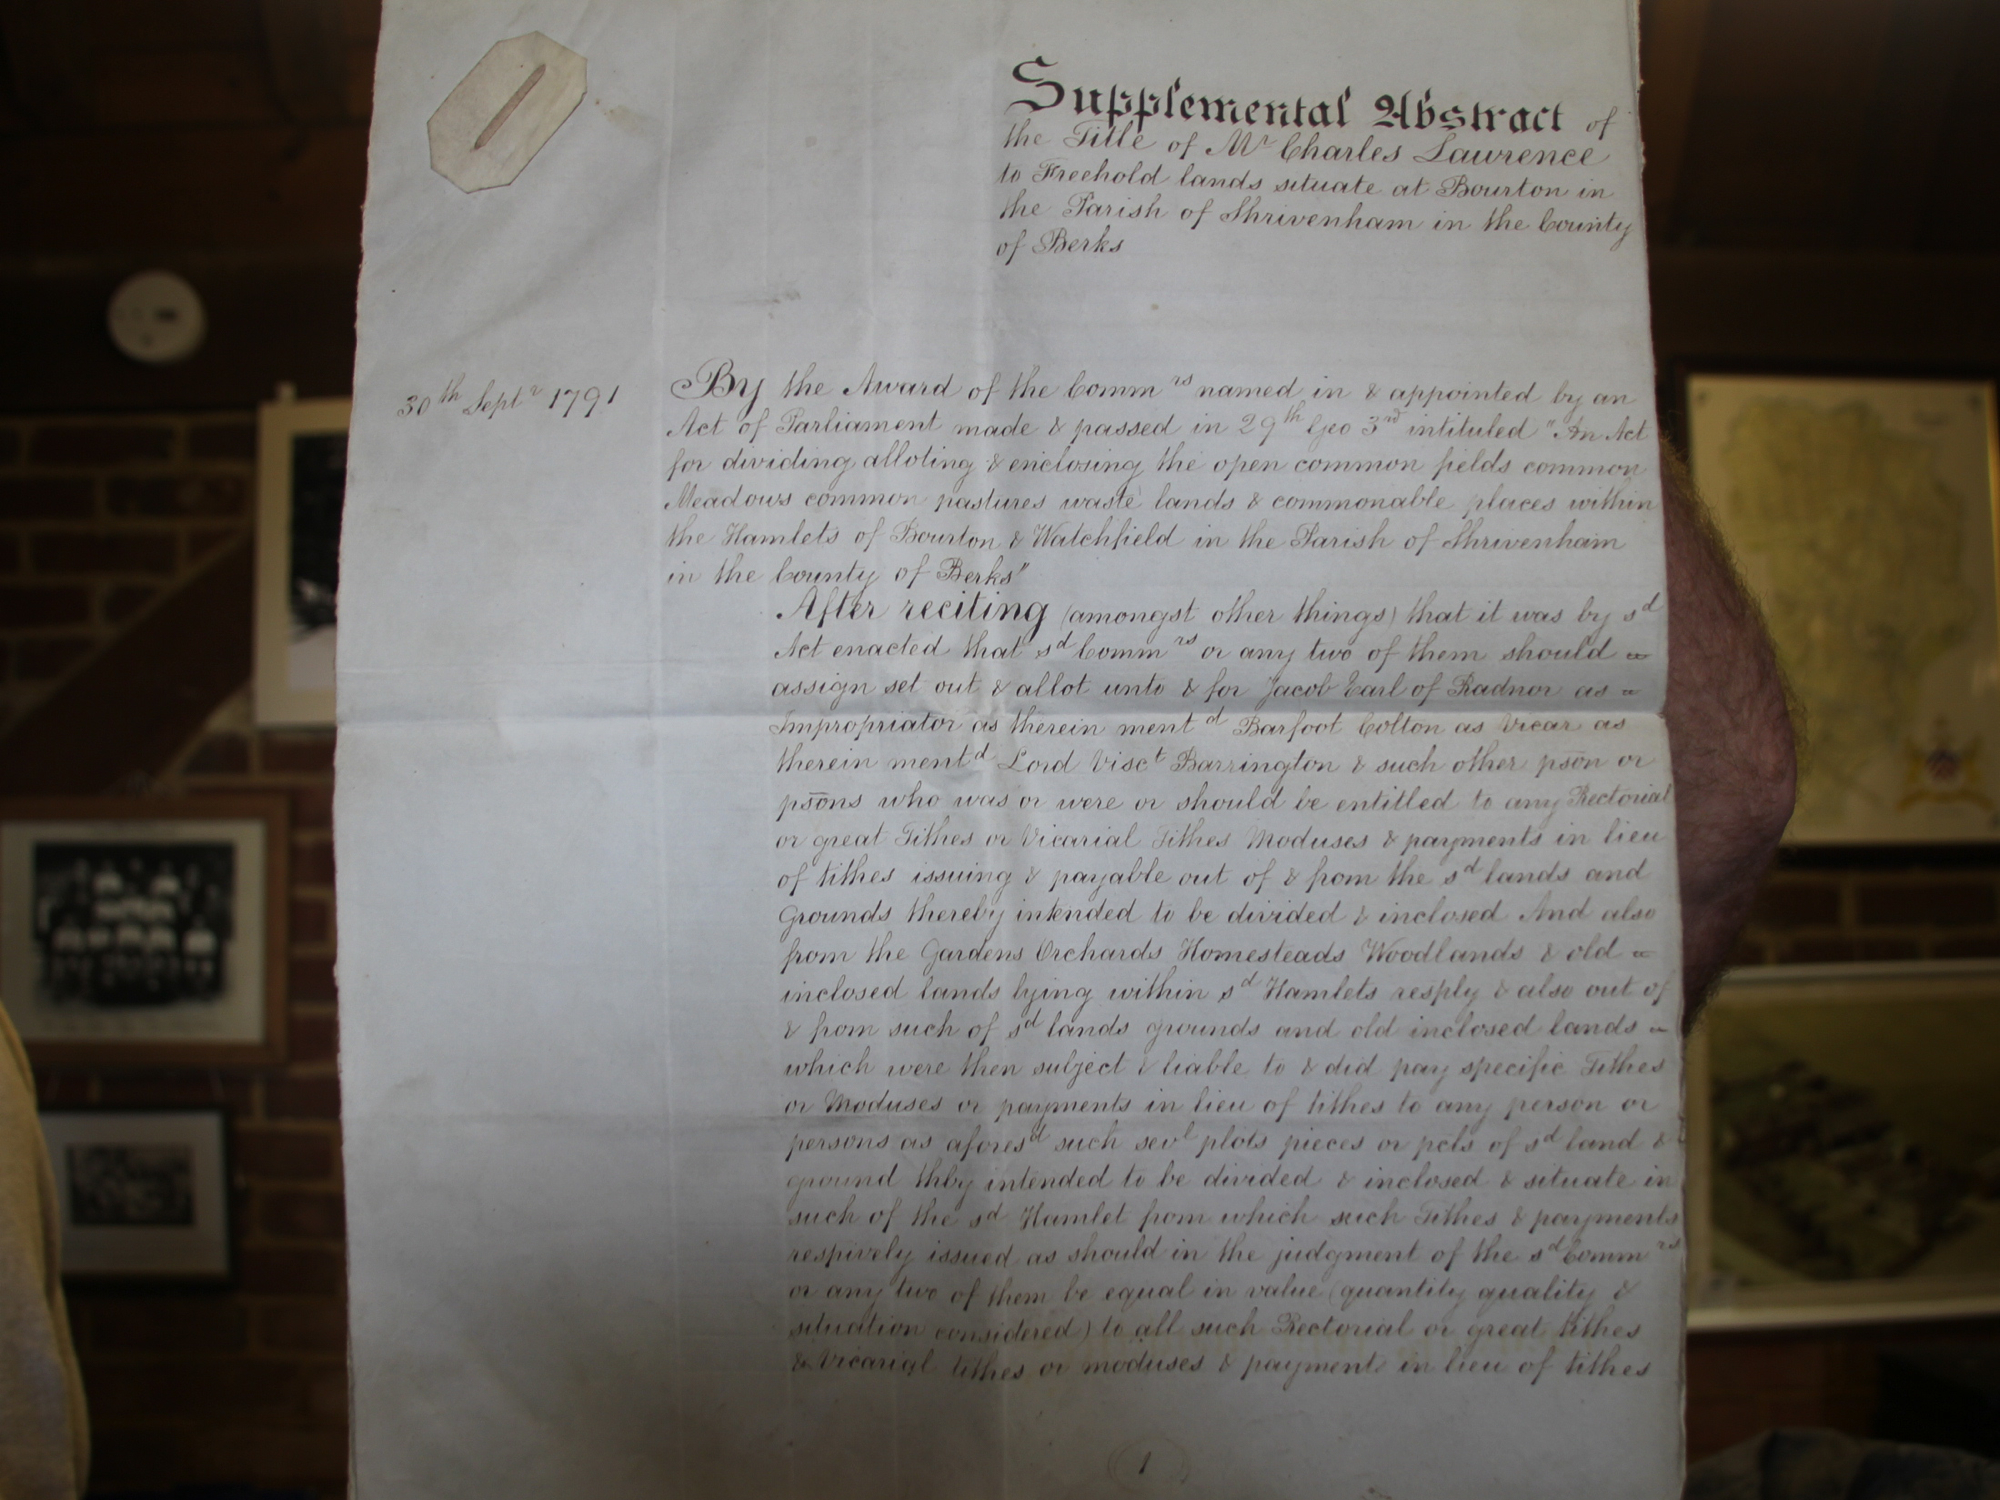 Supplemental Abstract of title of lands at Bourton to Charles Lawrence